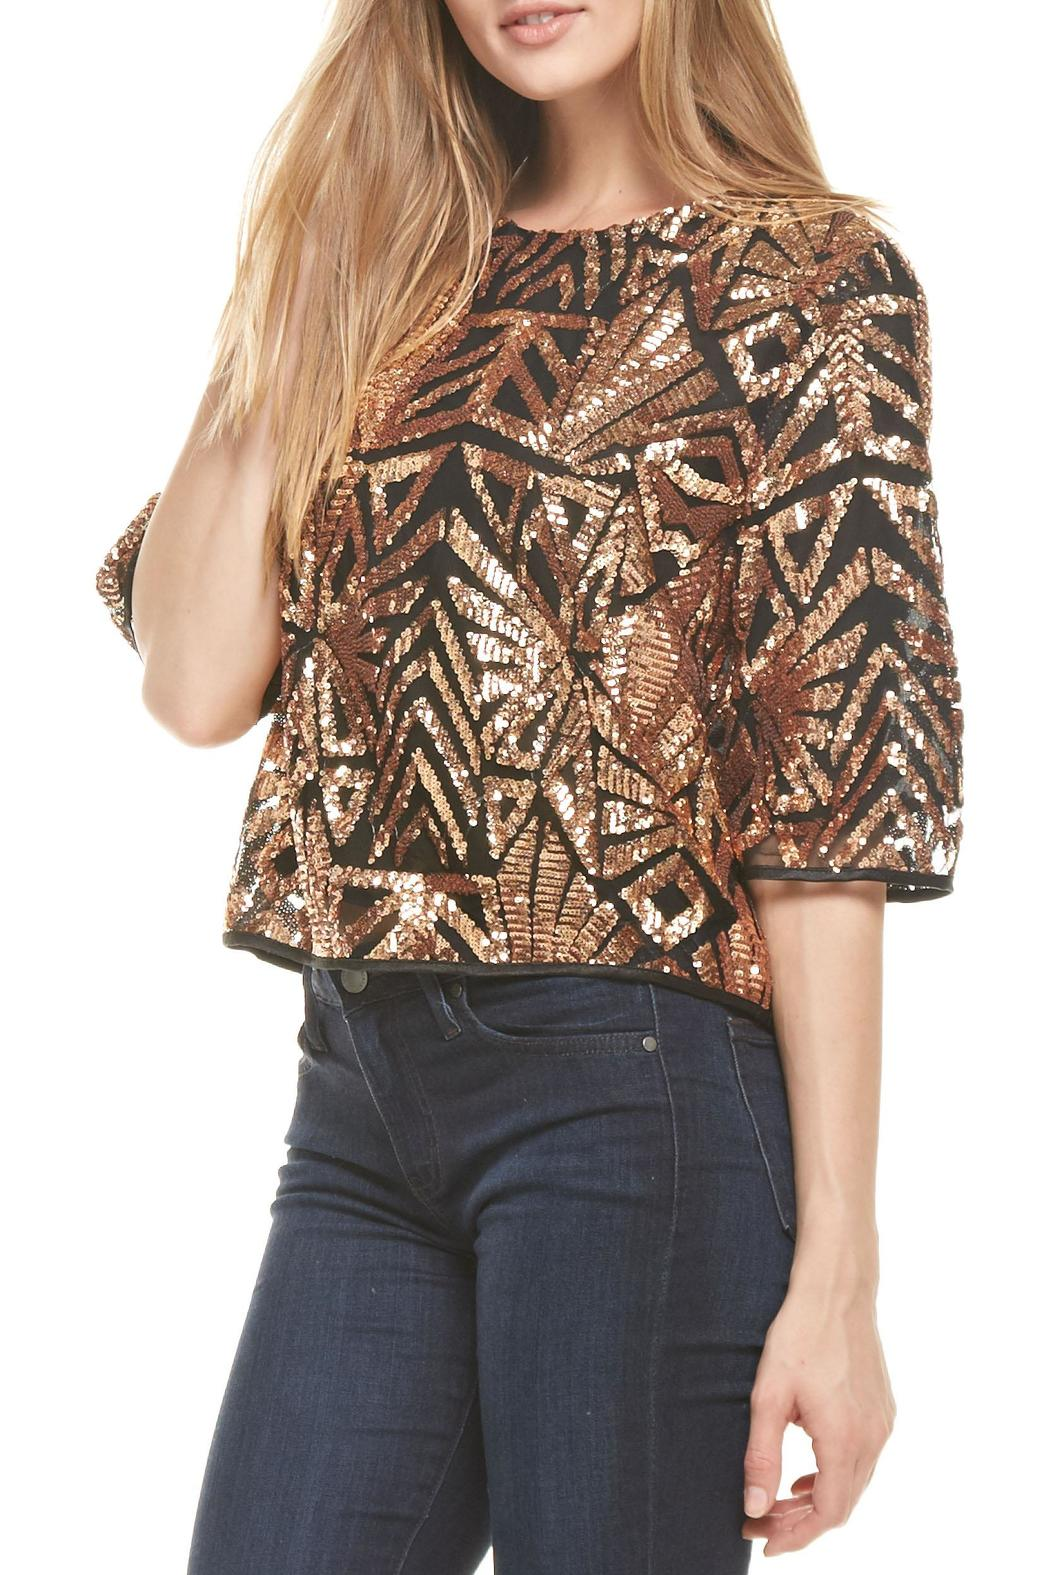 Everly Rose-Gold Sequins Top - Front Full Image